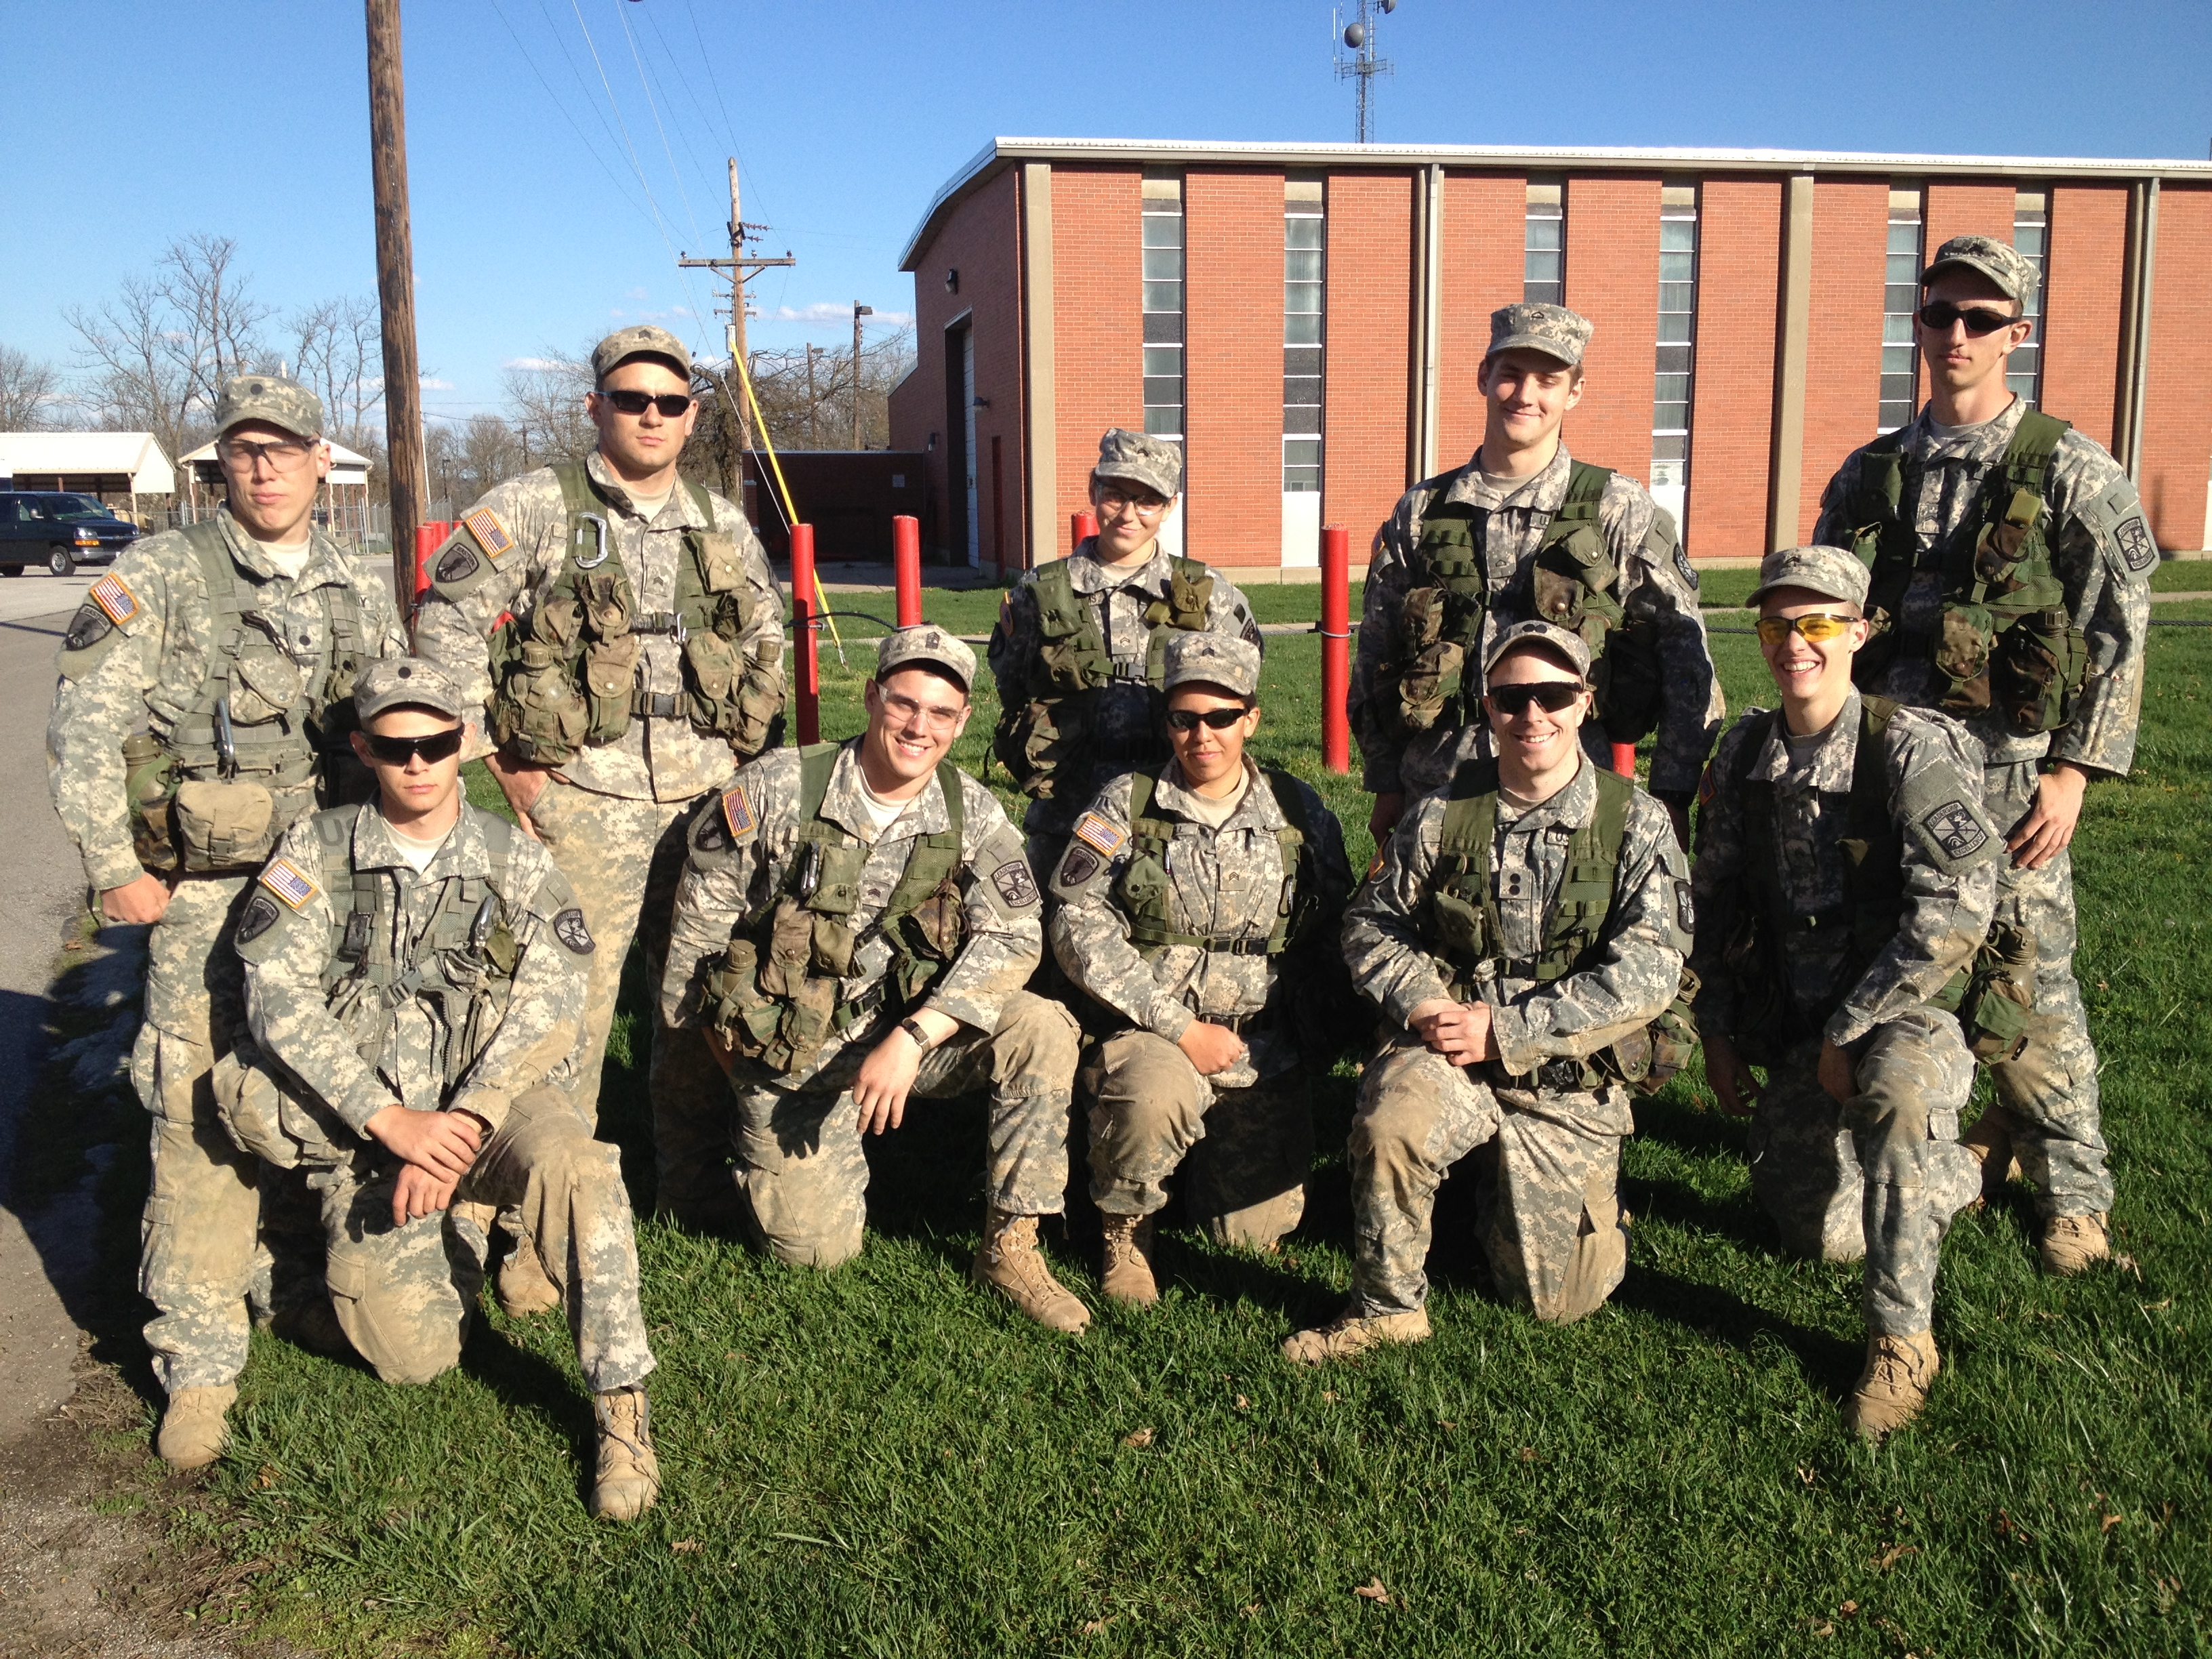 eku army rotc places 2nd at best ranger competition army. Black Bedroom Furniture Sets. Home Design Ideas